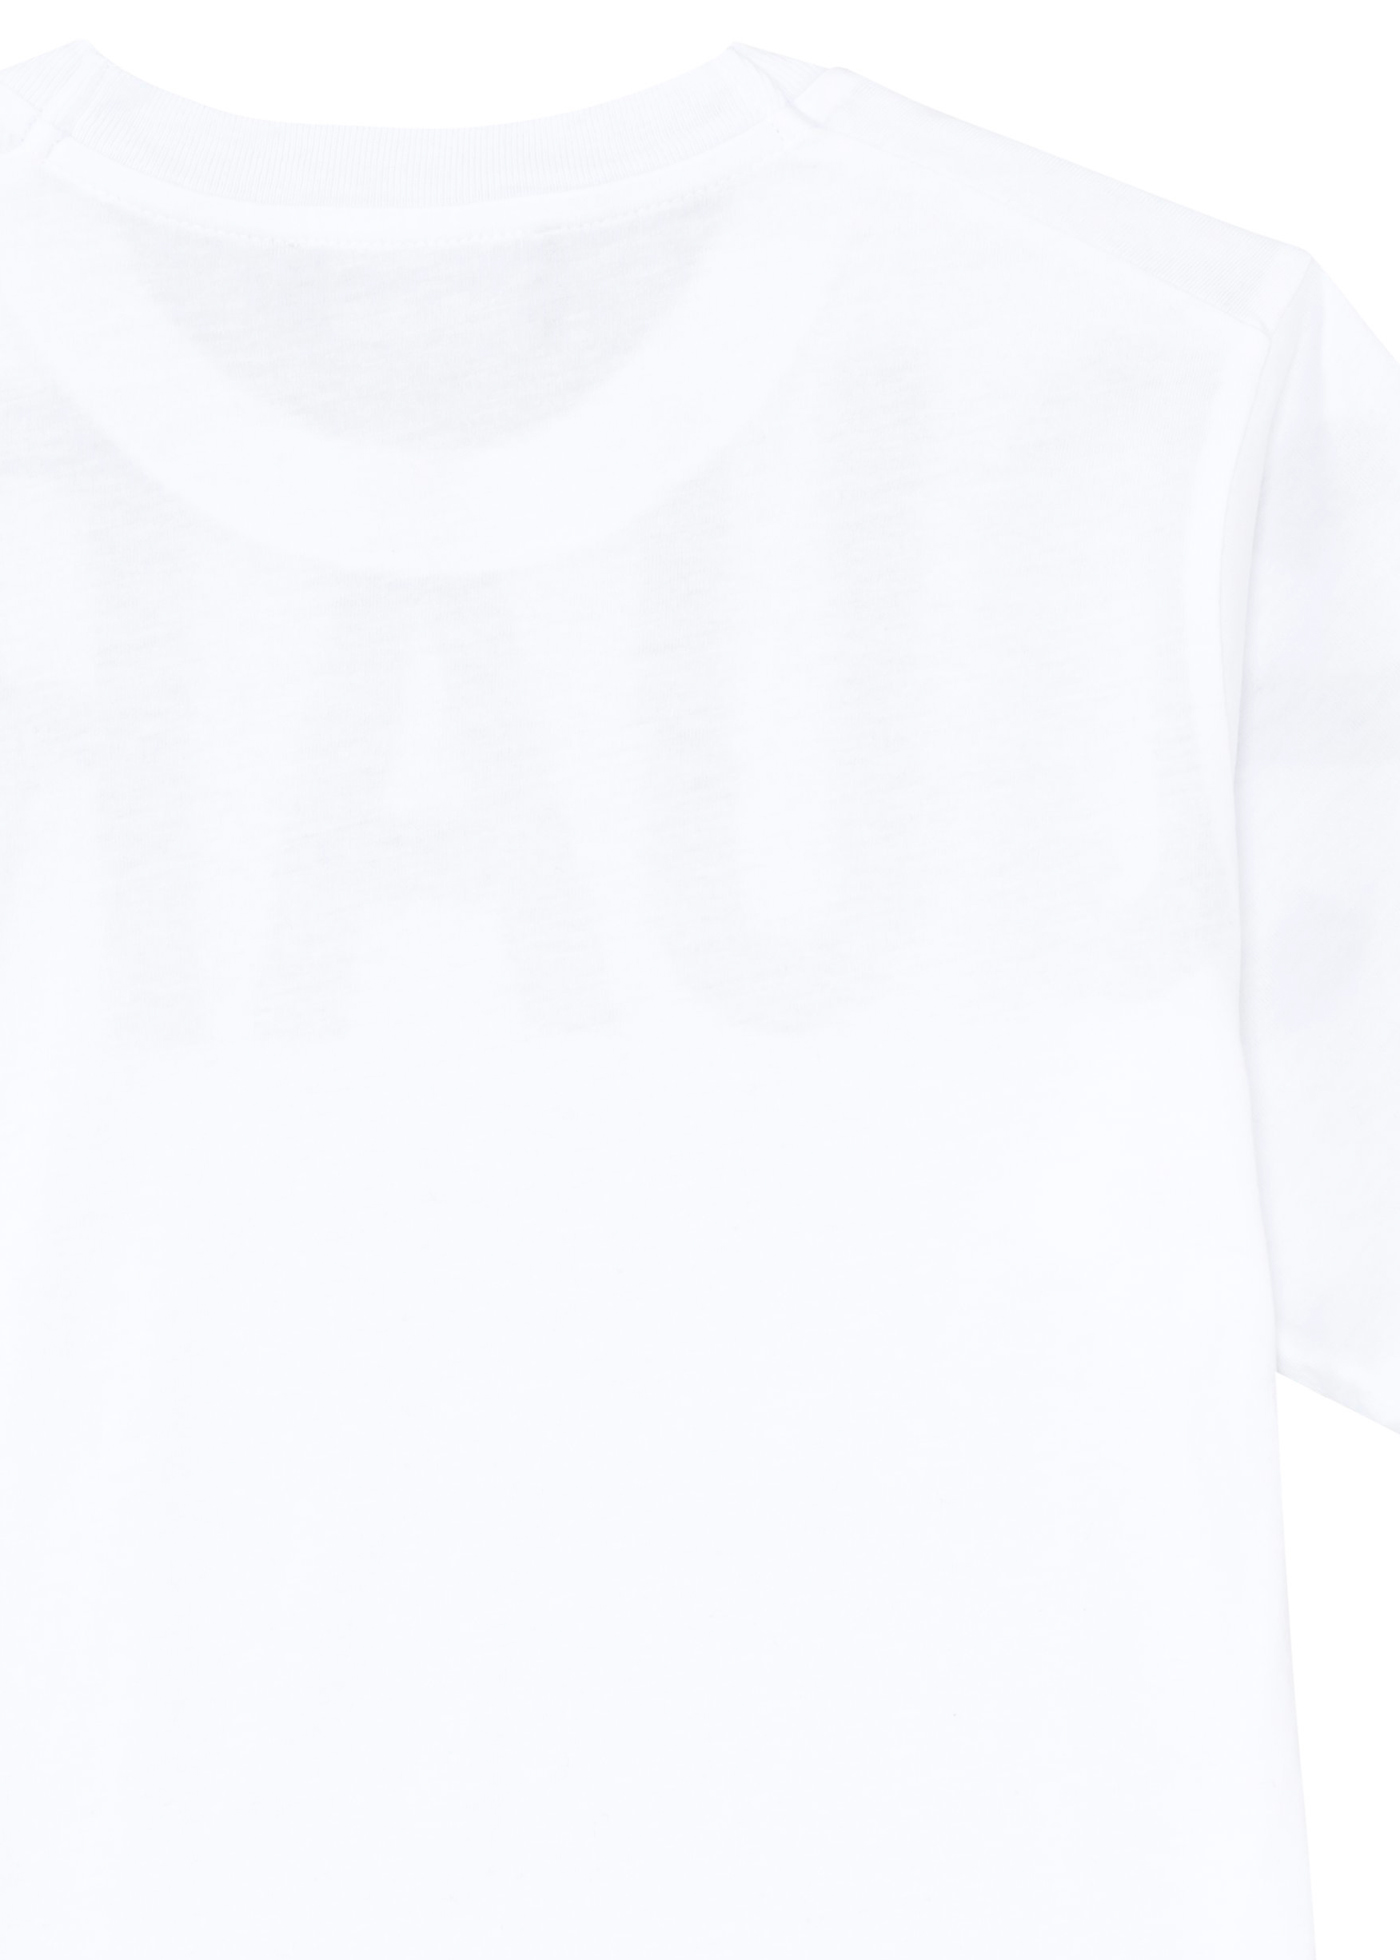 DSQUARED2 Tee image number 3